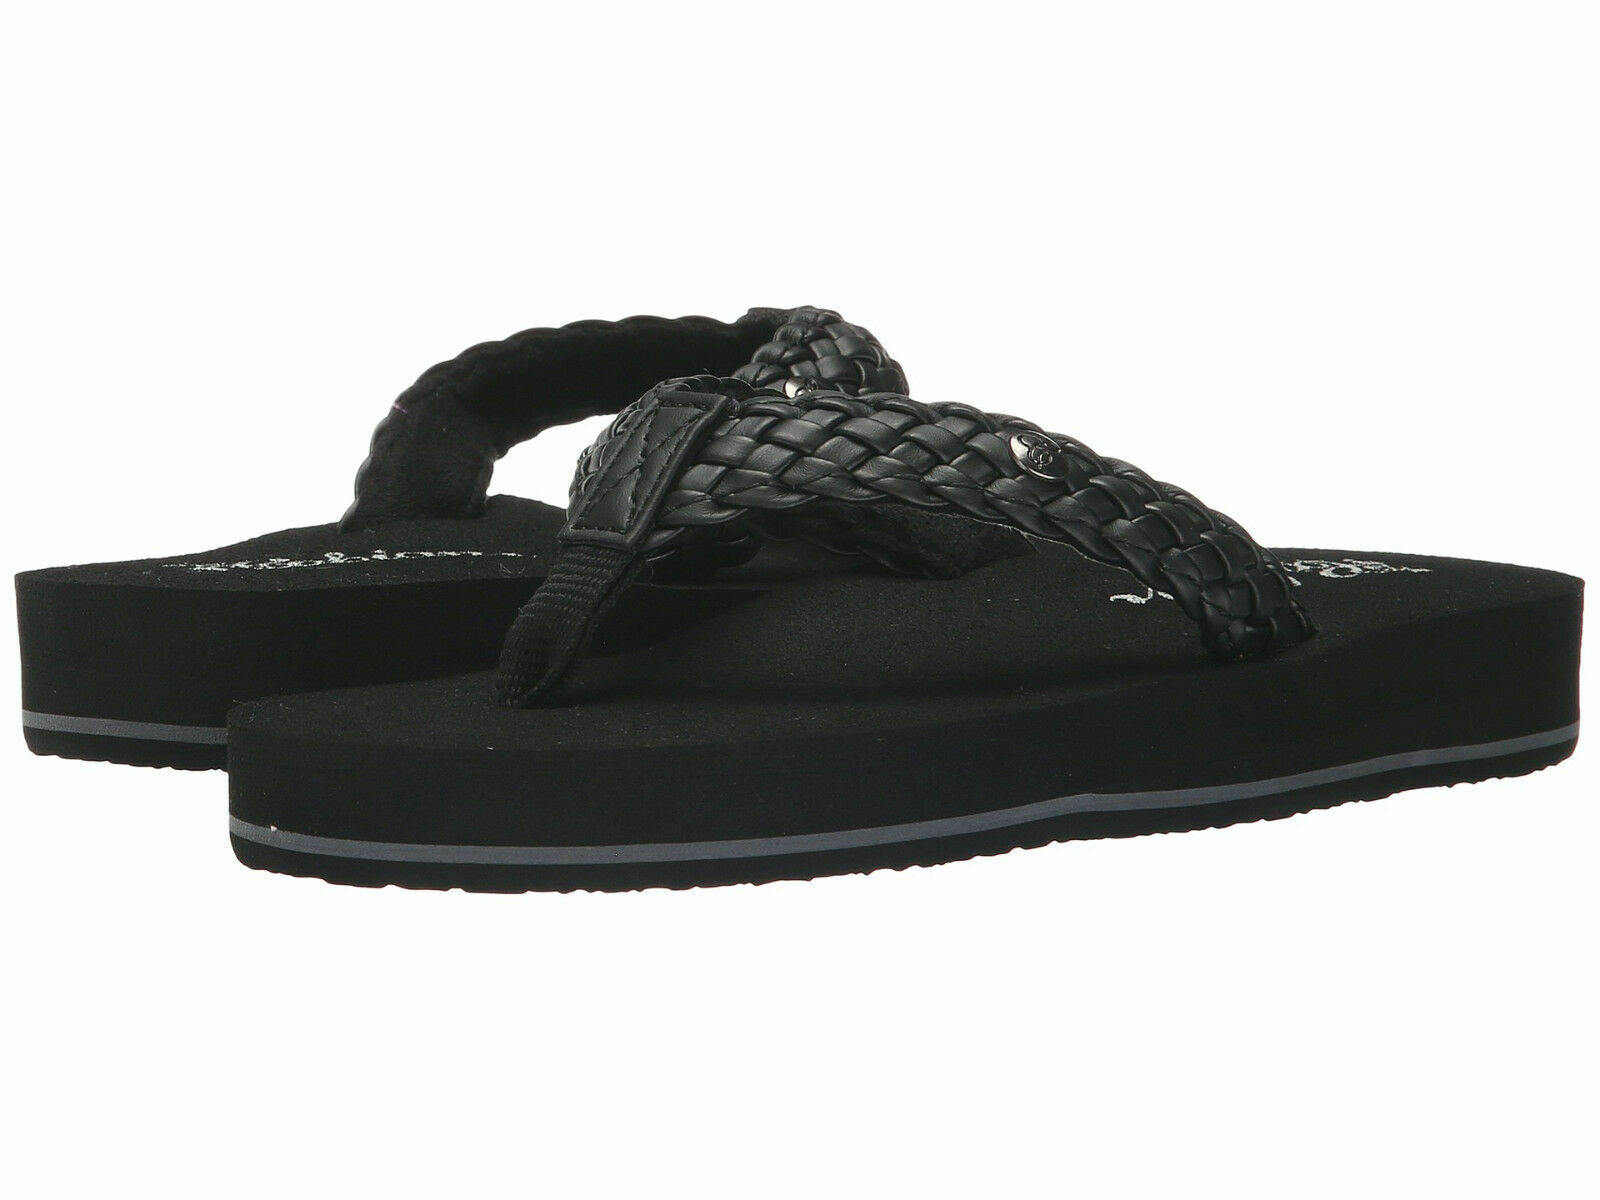 Women Cobian Braided Bounce Flip Flop Sandal BRB10-001 Black 100% Original New